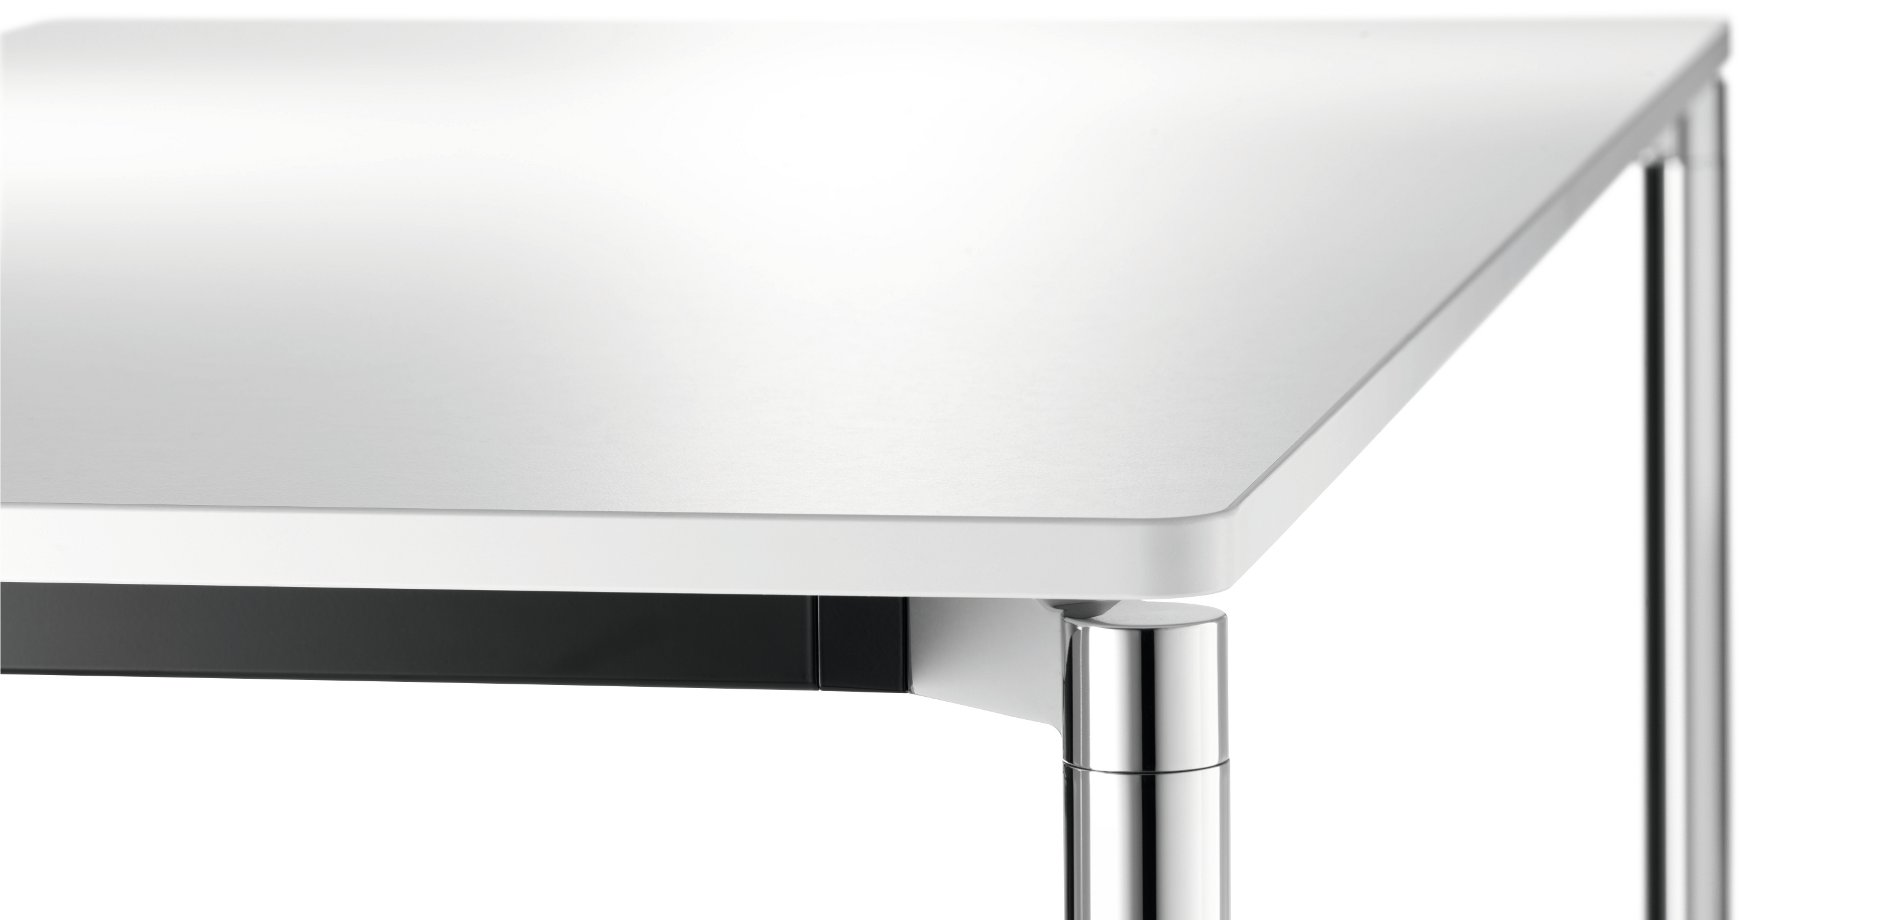 Concentra conference table by Wilkhahn